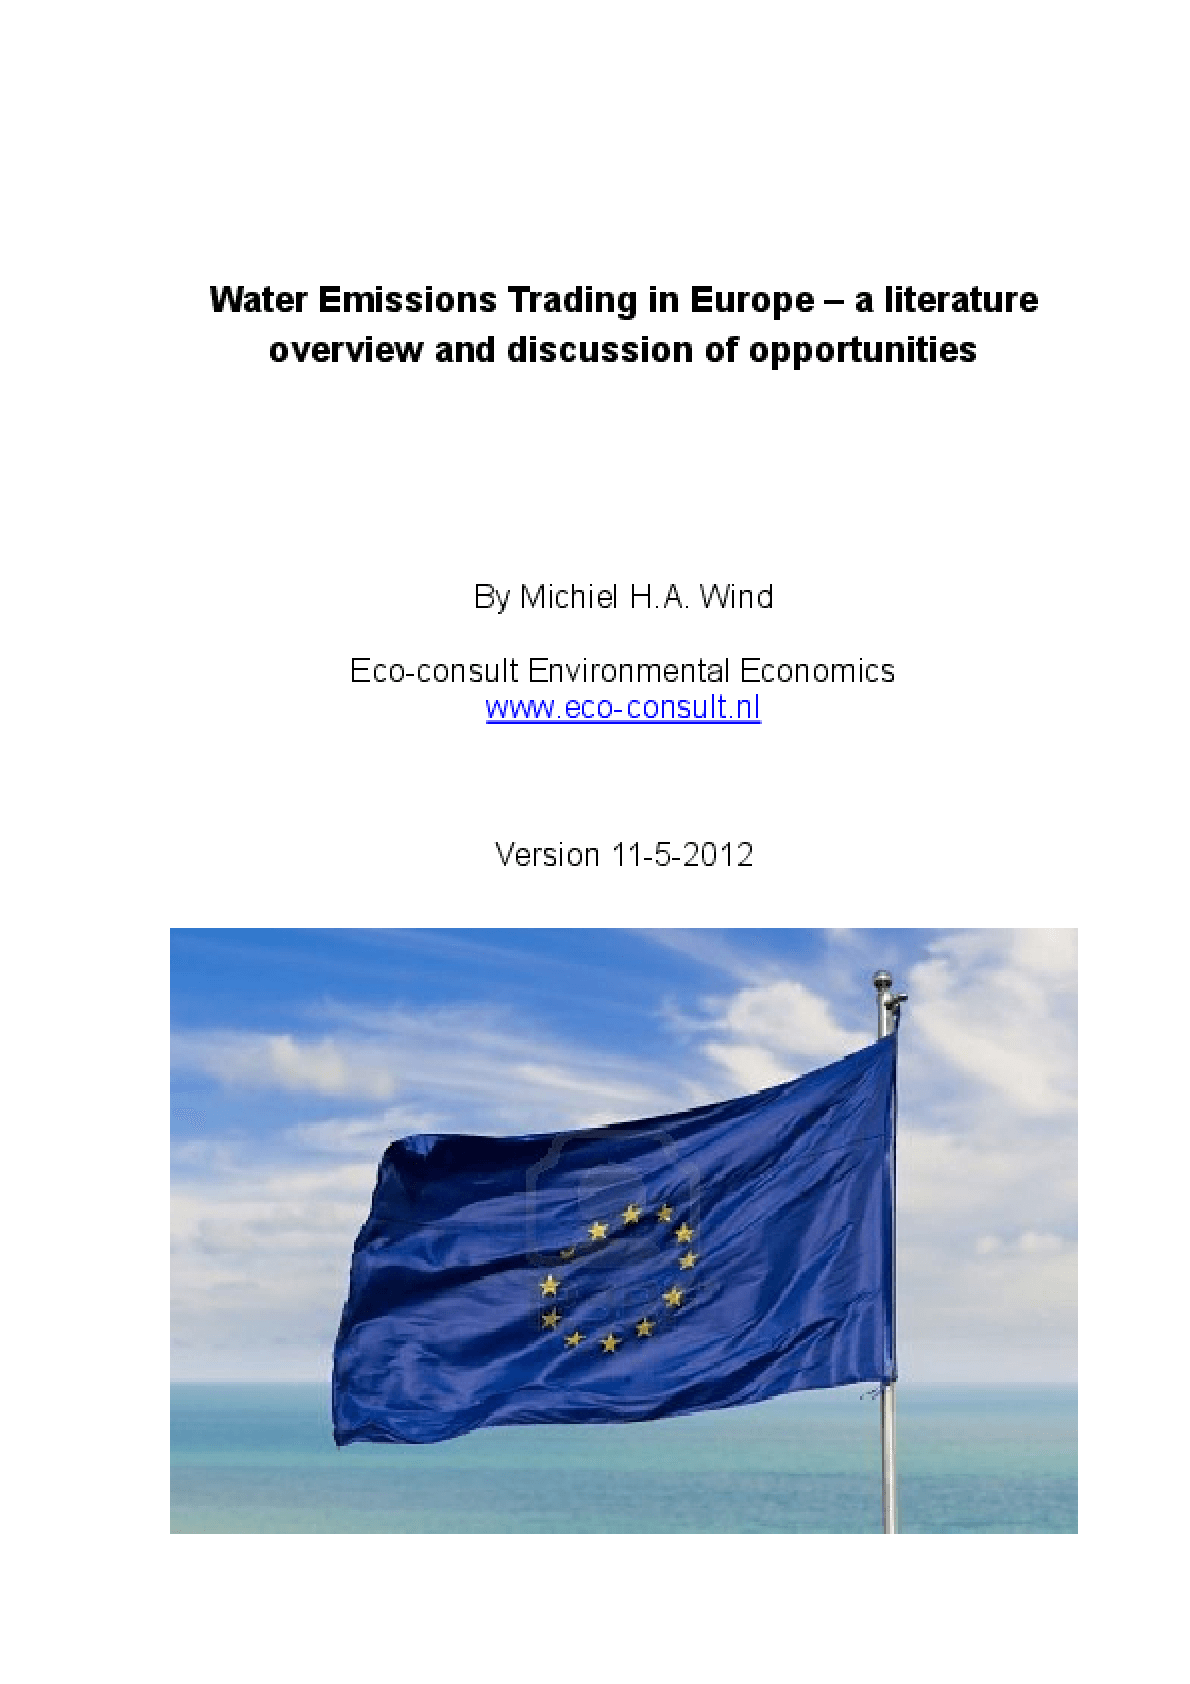 Water Emissions Trading in Europe: A Literature Overview and Discussion of Opportunities